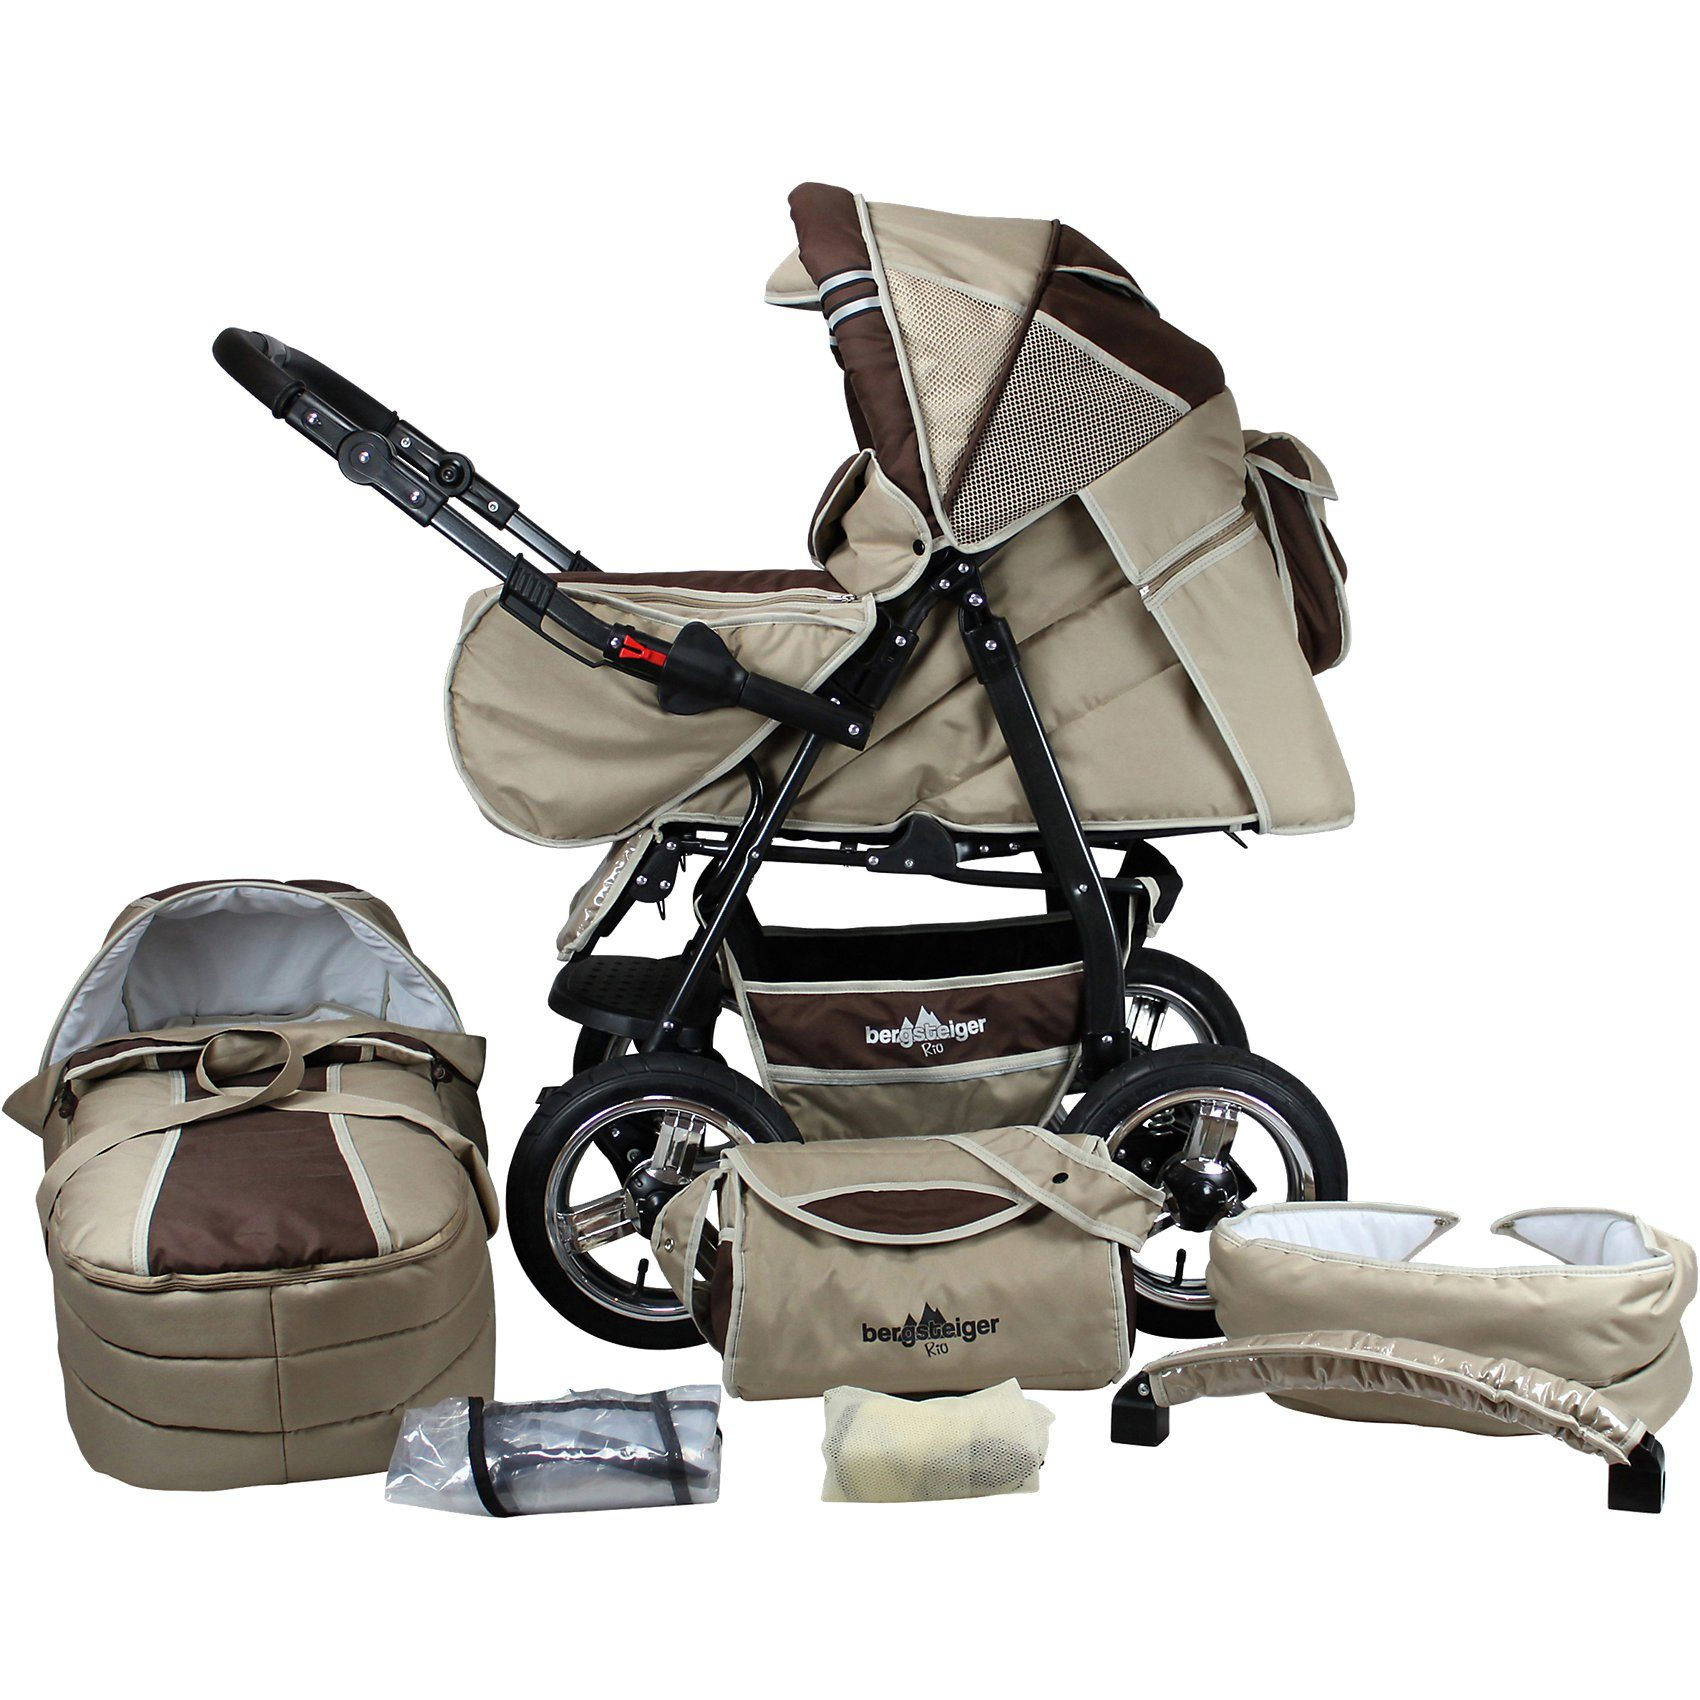 Bergsteiger Kombi Kinderwagen Rio, 10 tlg., coffee & brown